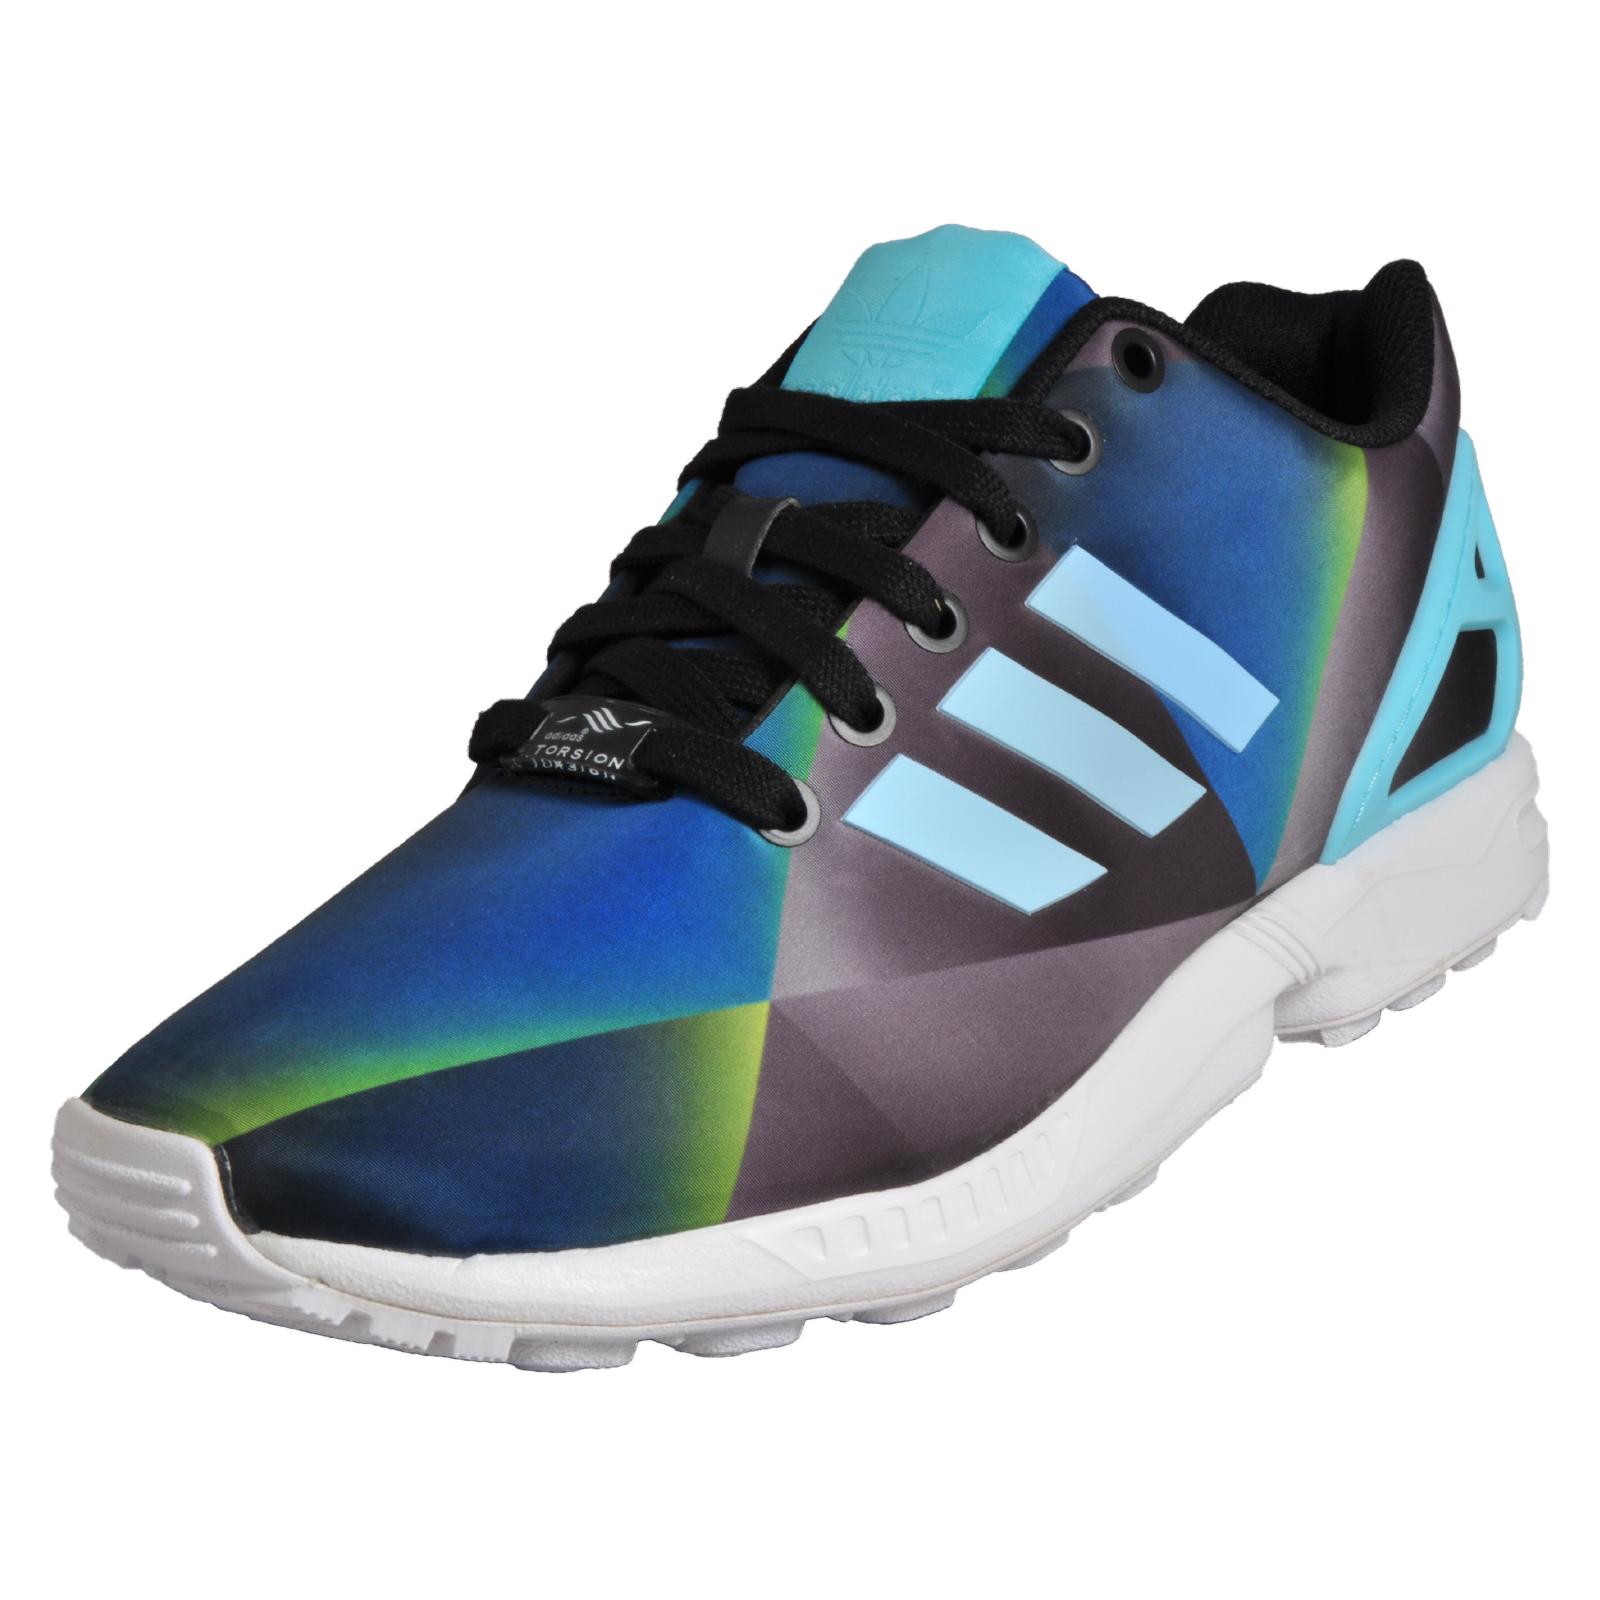 39cd0fabb313d Details about Adidas Originals ZX Flux Mens Classic Casual Running Gym  Fashion Retro Trainers